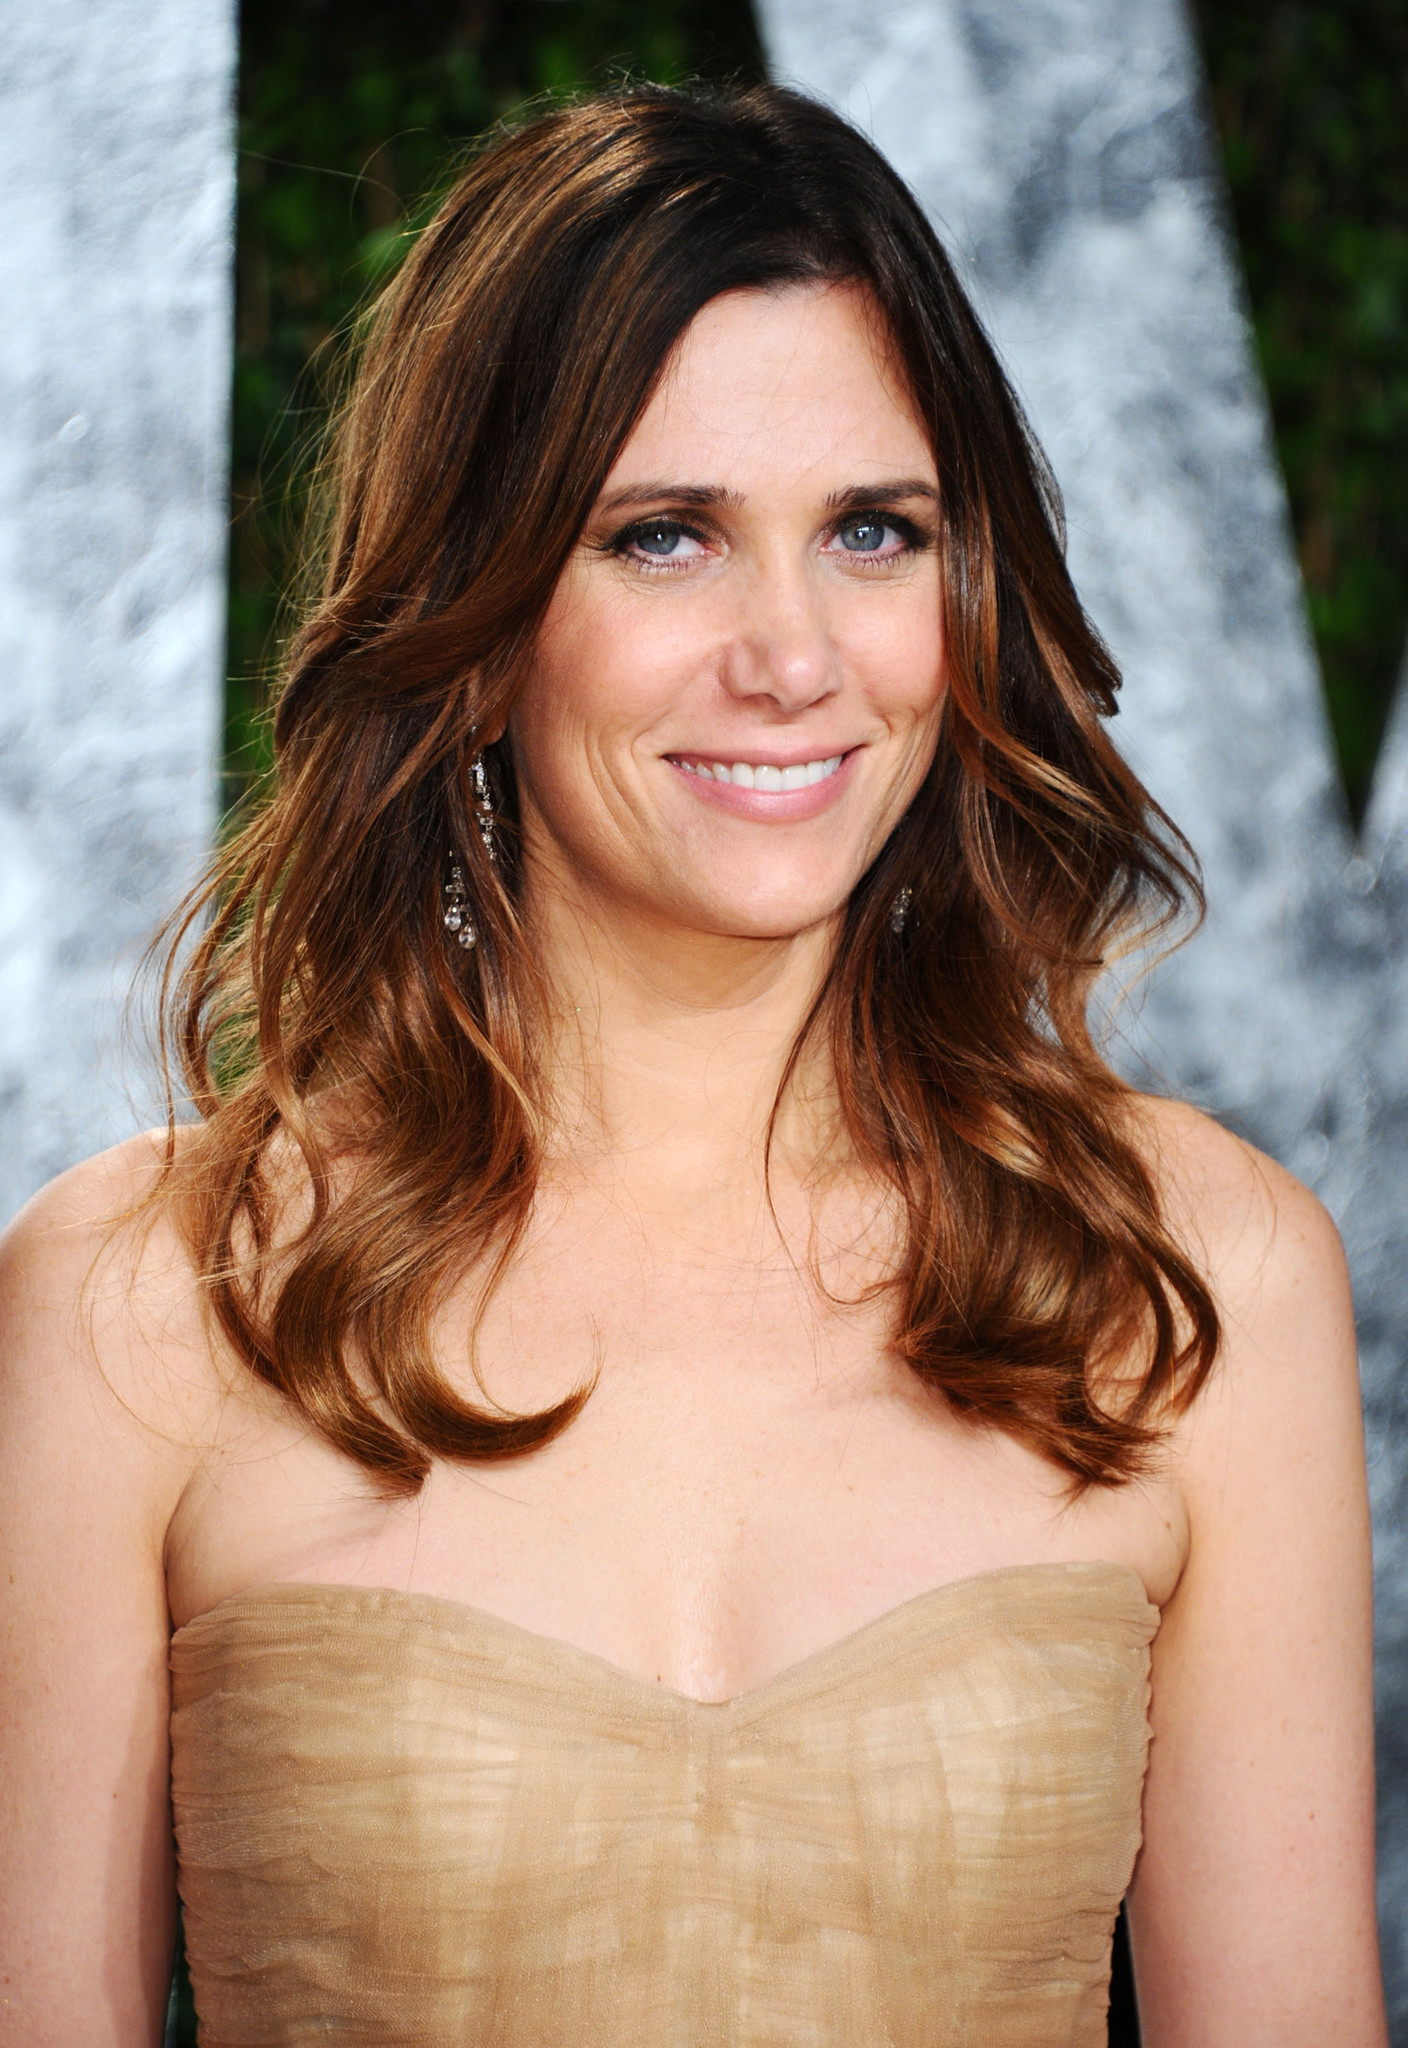 """Bridesmaids"" and former SNL star Kristen Wiig arrives at the 2012 Vanity Fair Oscar Party."